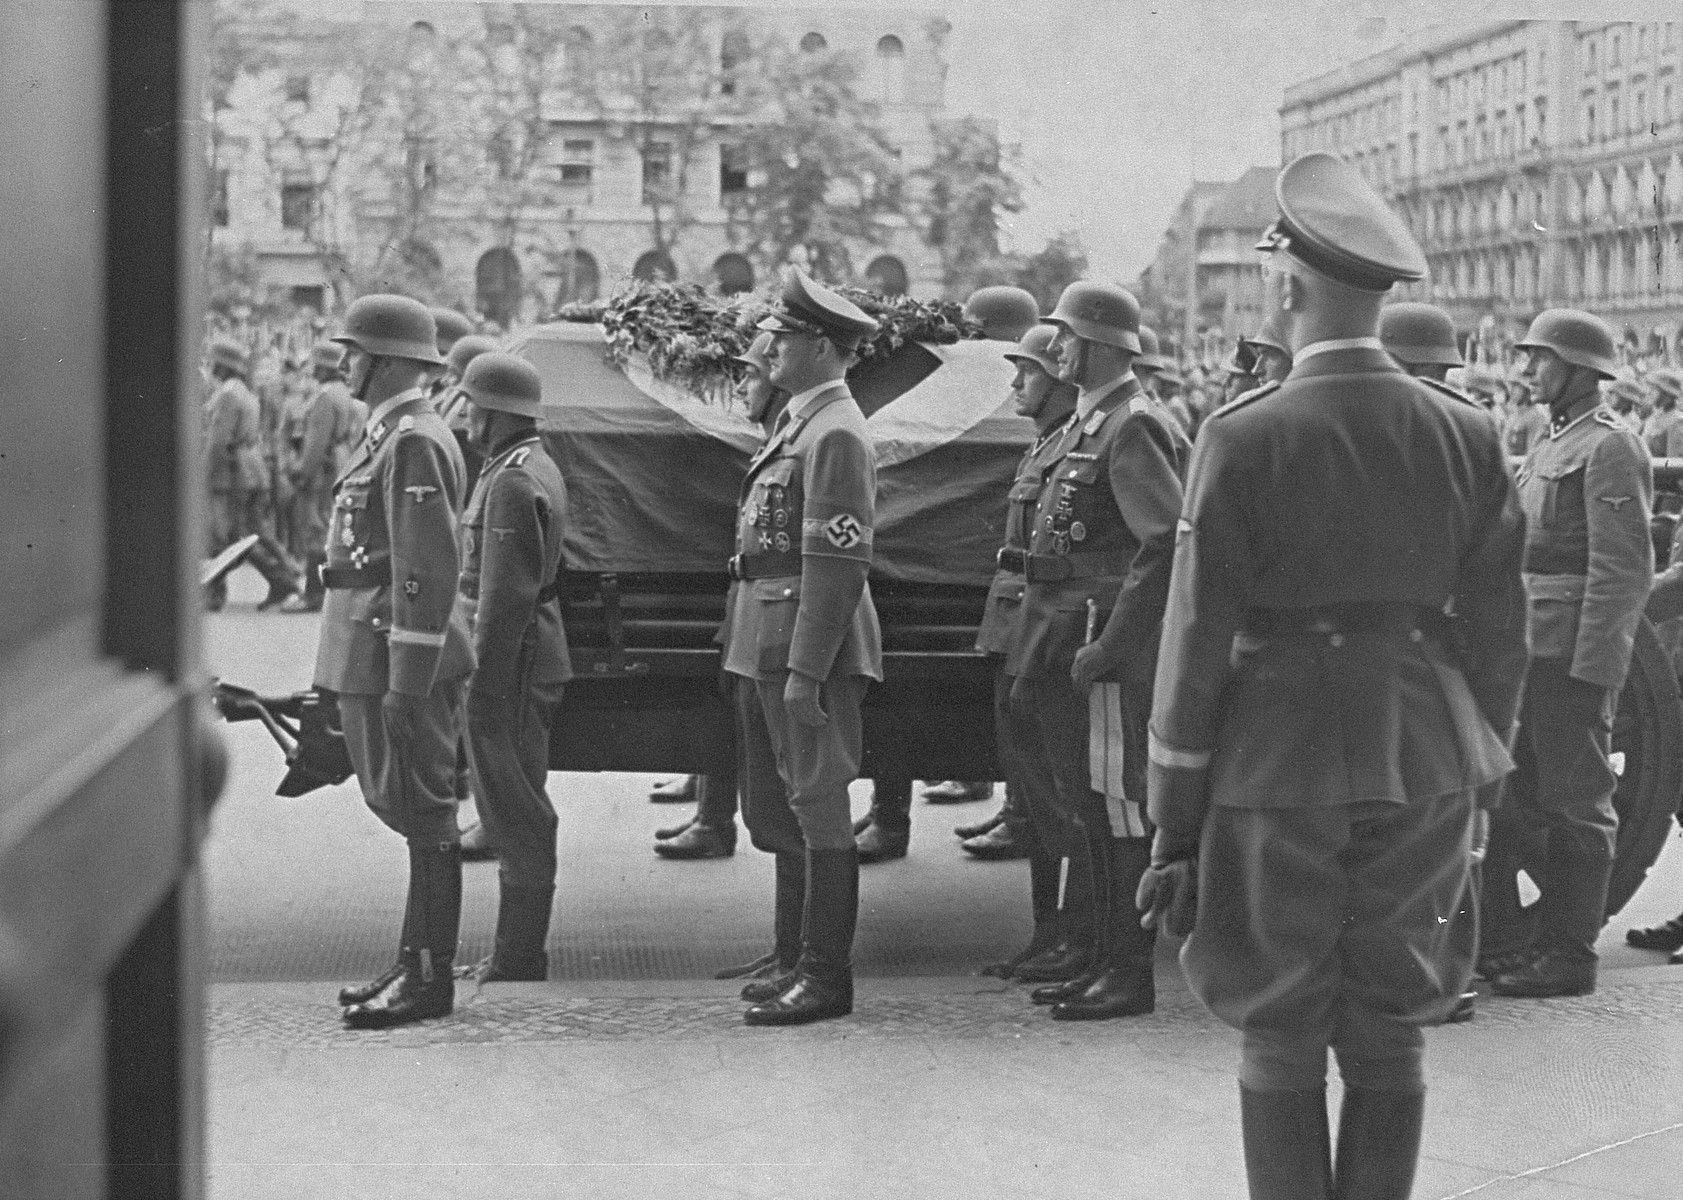 Reichsfuehrer-SS Heinrich Himmler looks on as Reinhard Heydrich's casket is carried out from the Reich chancellery for burial.